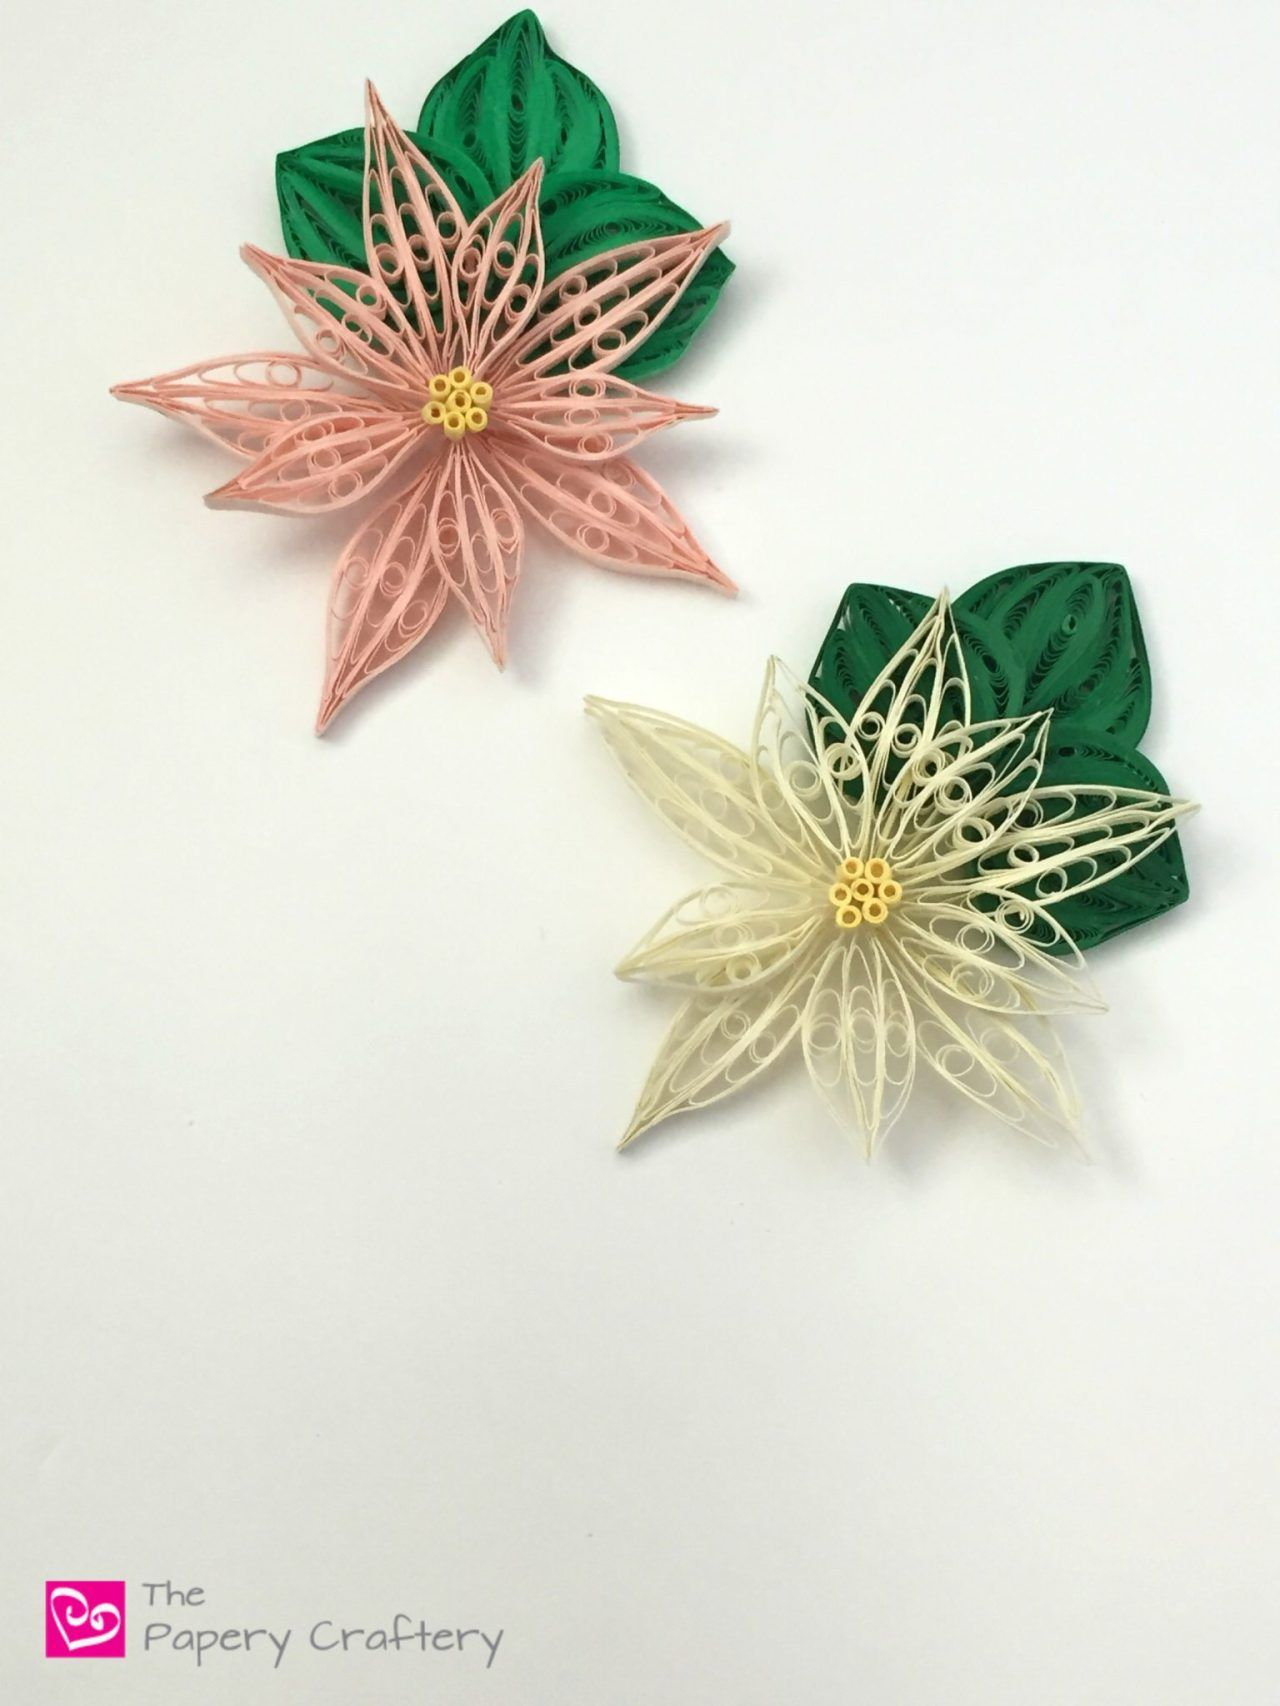 Quilling paper poinsettia flowers use a quilling comb to make quilling paper poinsettia flowers use a quilling comb to make traditional holiday blooms thepaperycraftery mightylinksfo